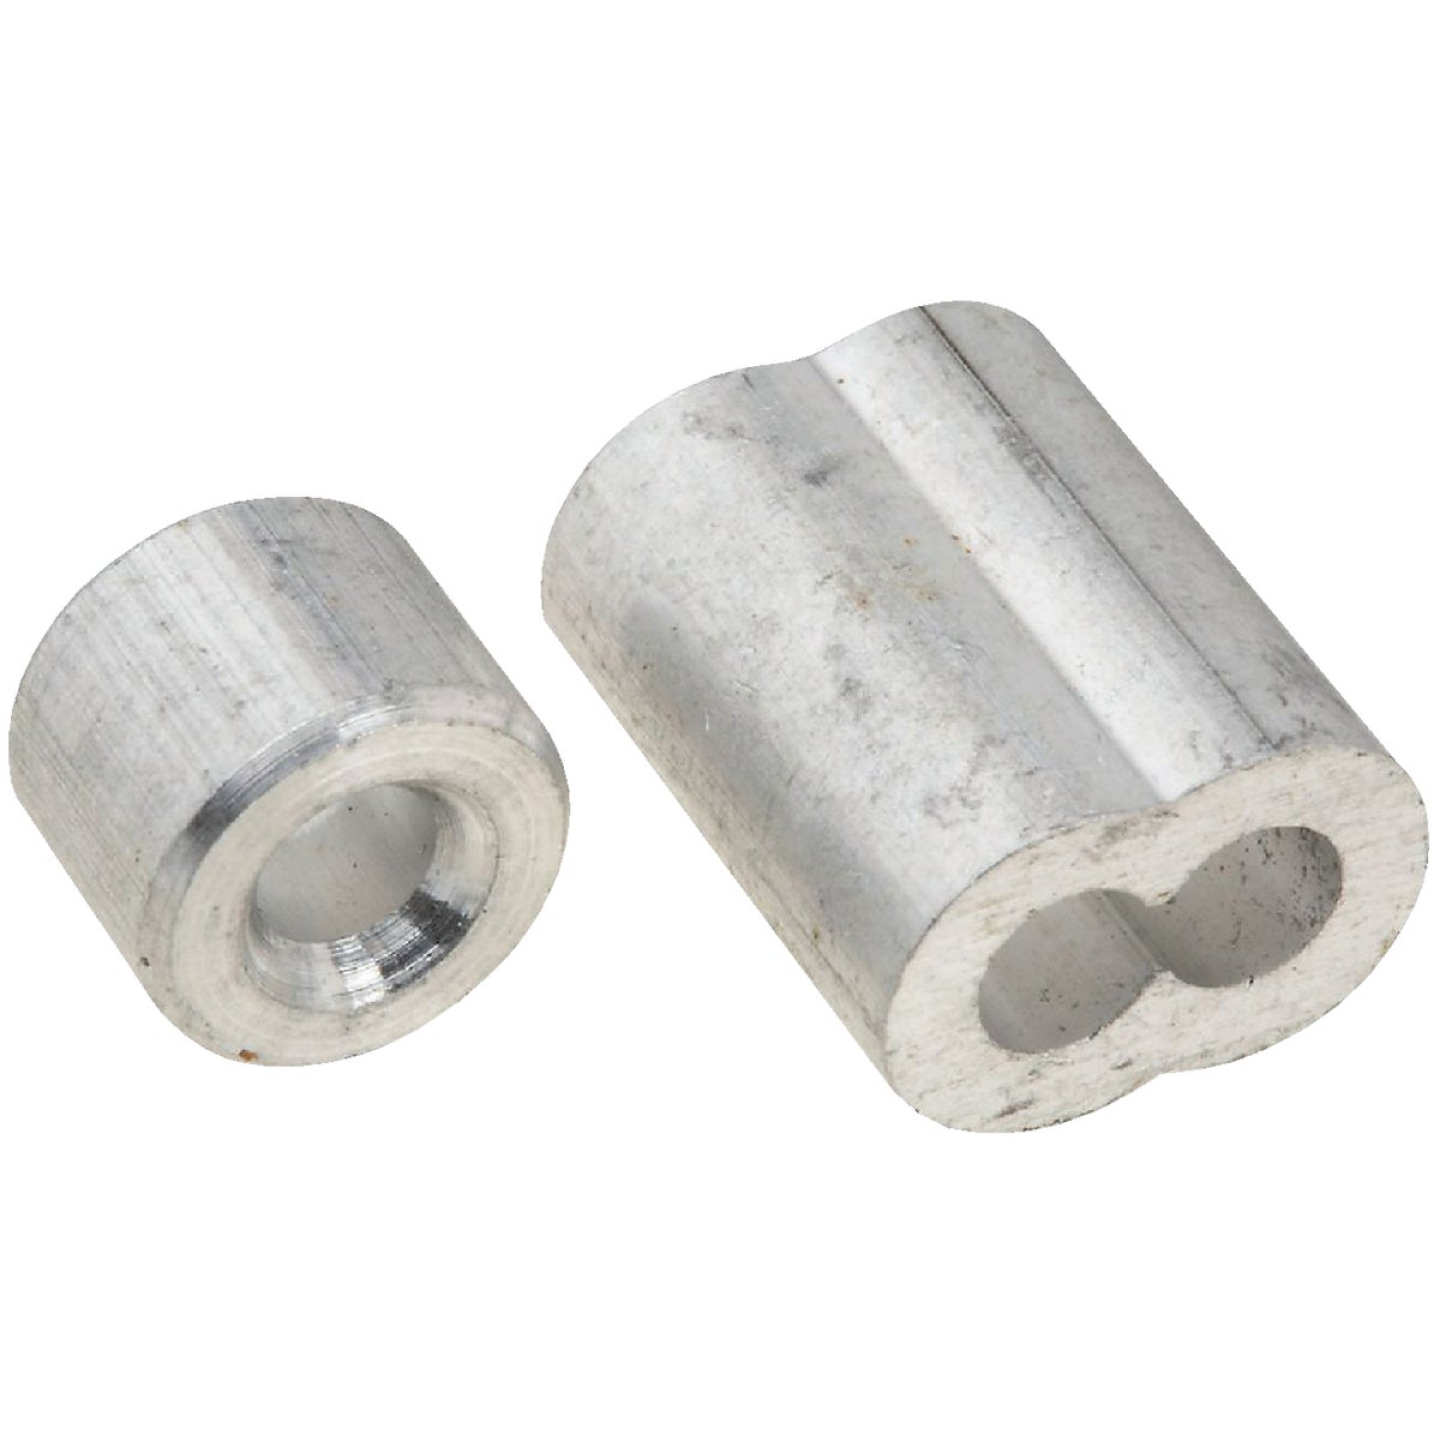 National 5/32 In. Aluminum Garage Door Ferrule & Stop Kit Image 1